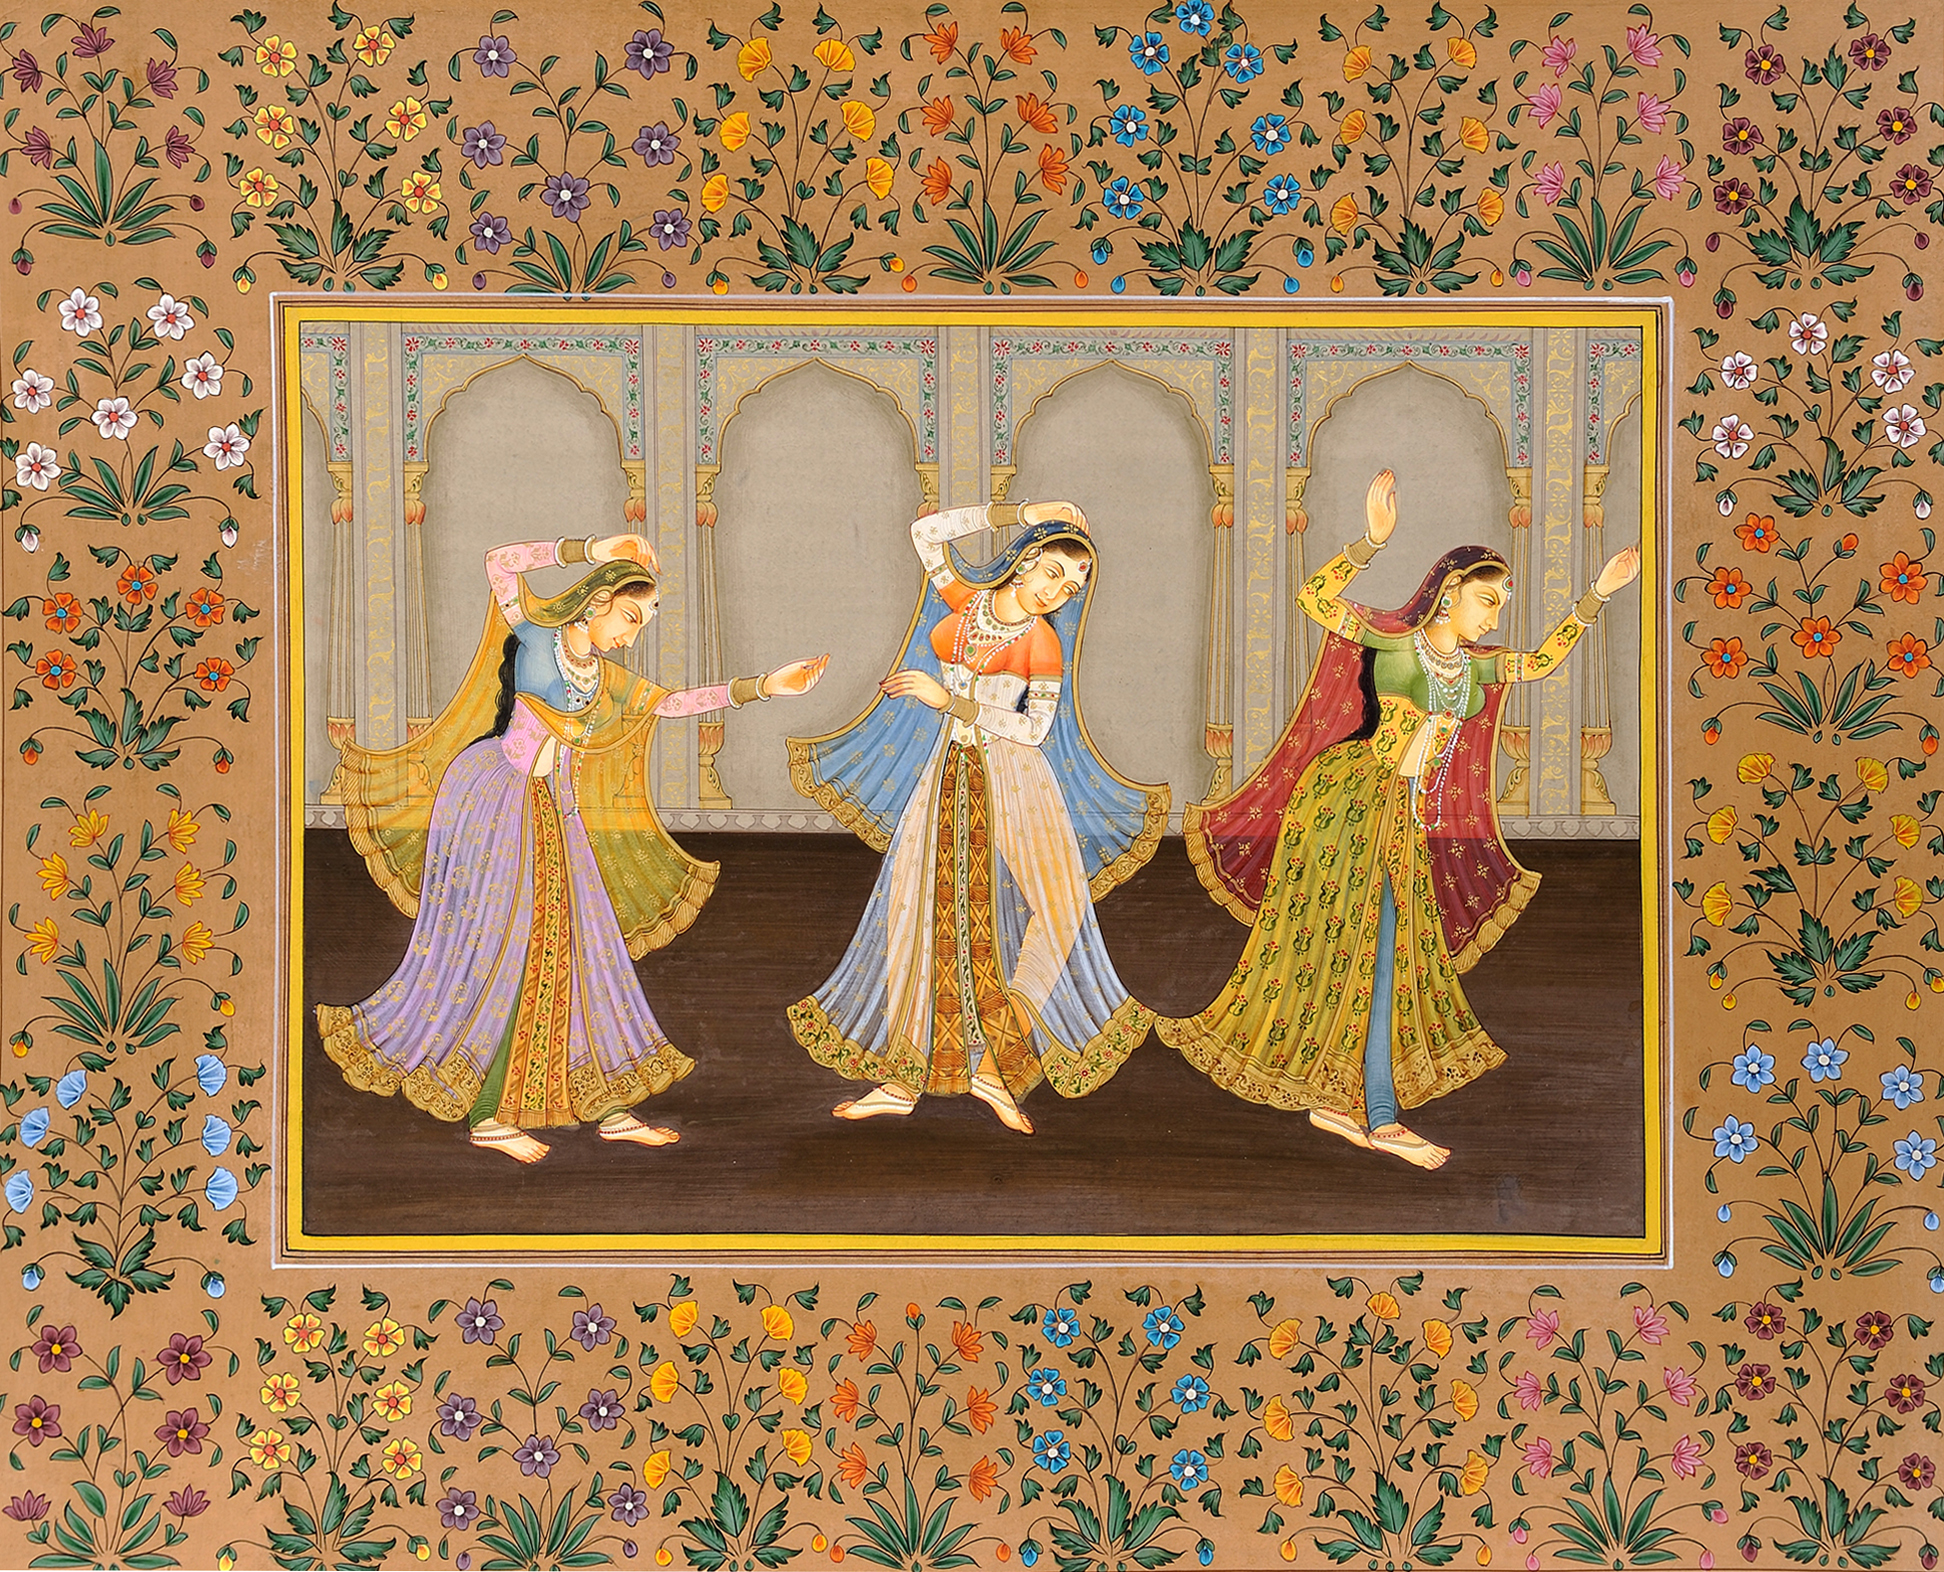 Mughal Influence on Modern India